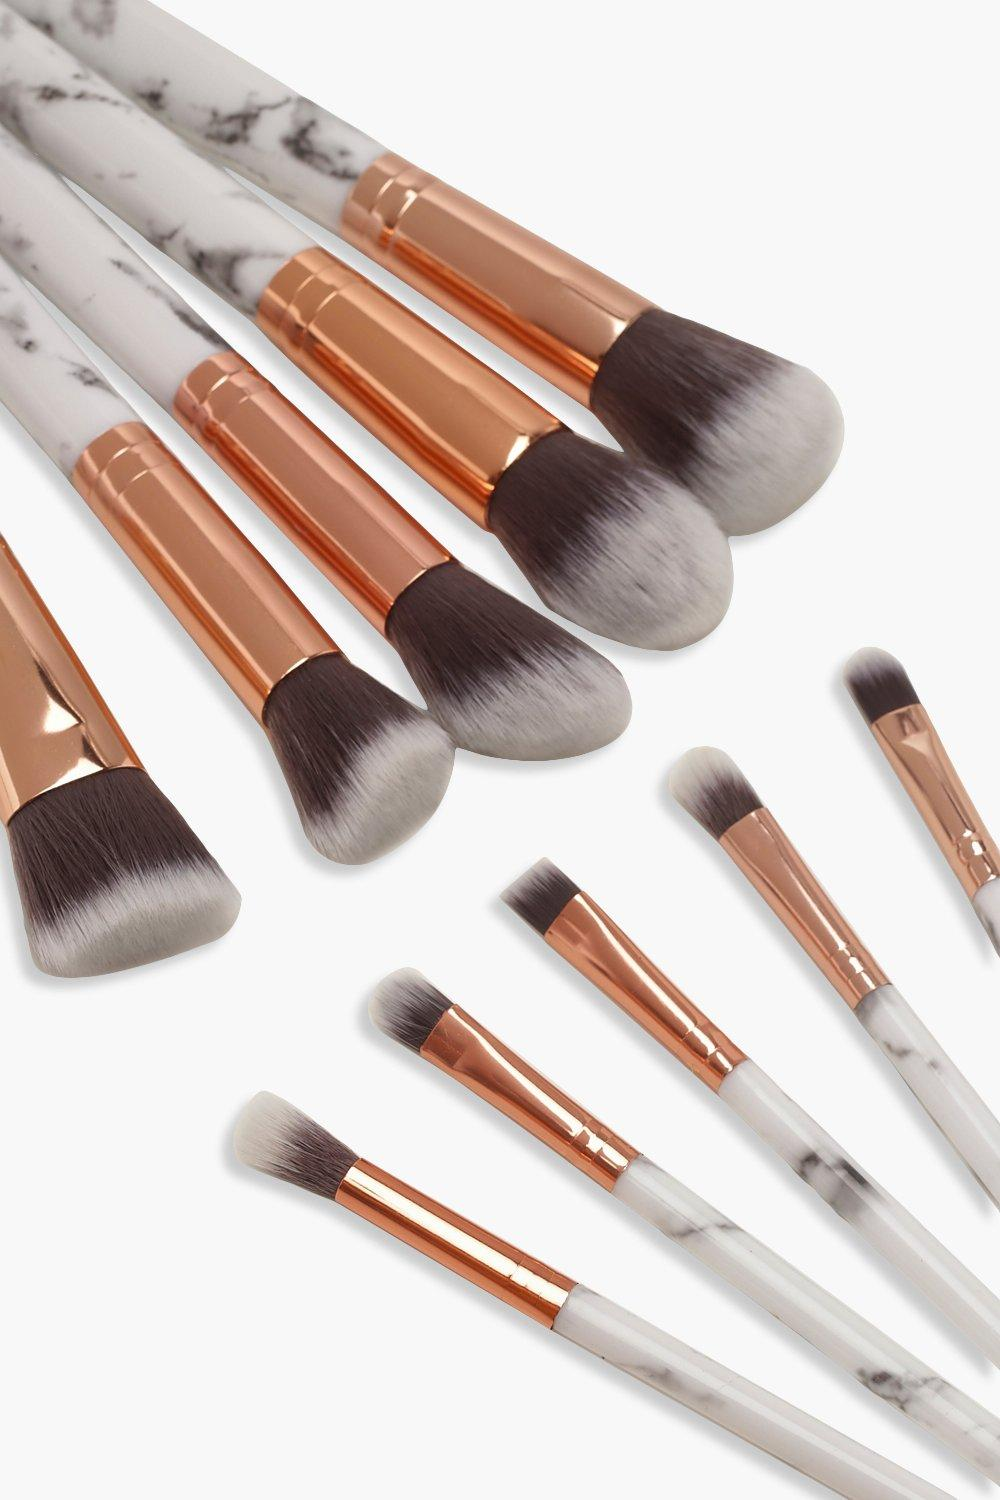 Jaslyn Luxurious High Quality Marble Finish Makeup Brush Set-Woven Trends